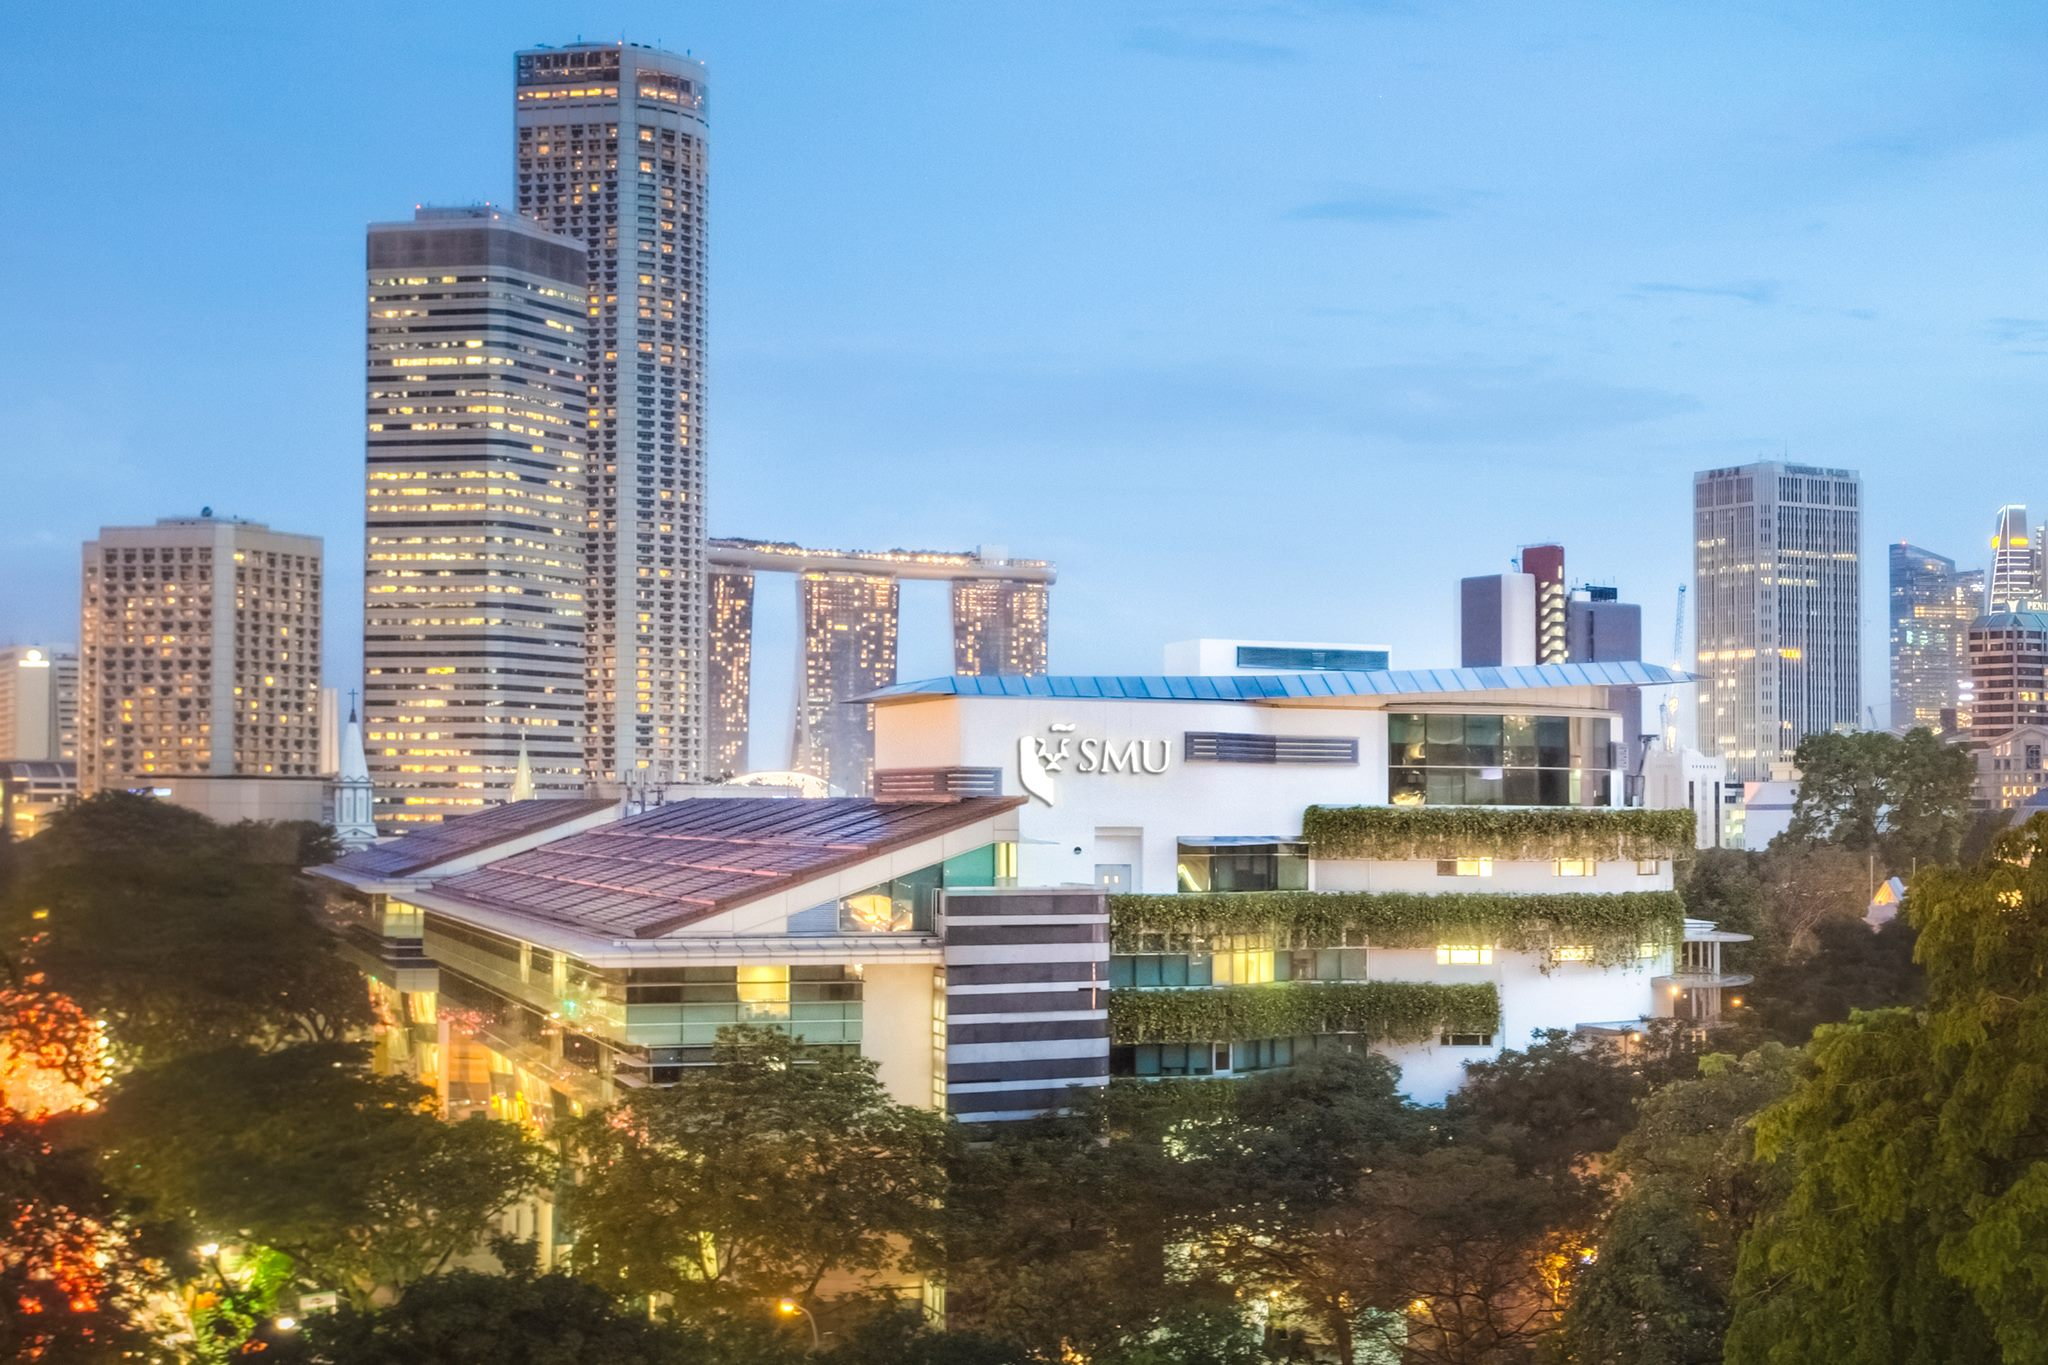 Lee Kong Chian School of Business - SMU Campus